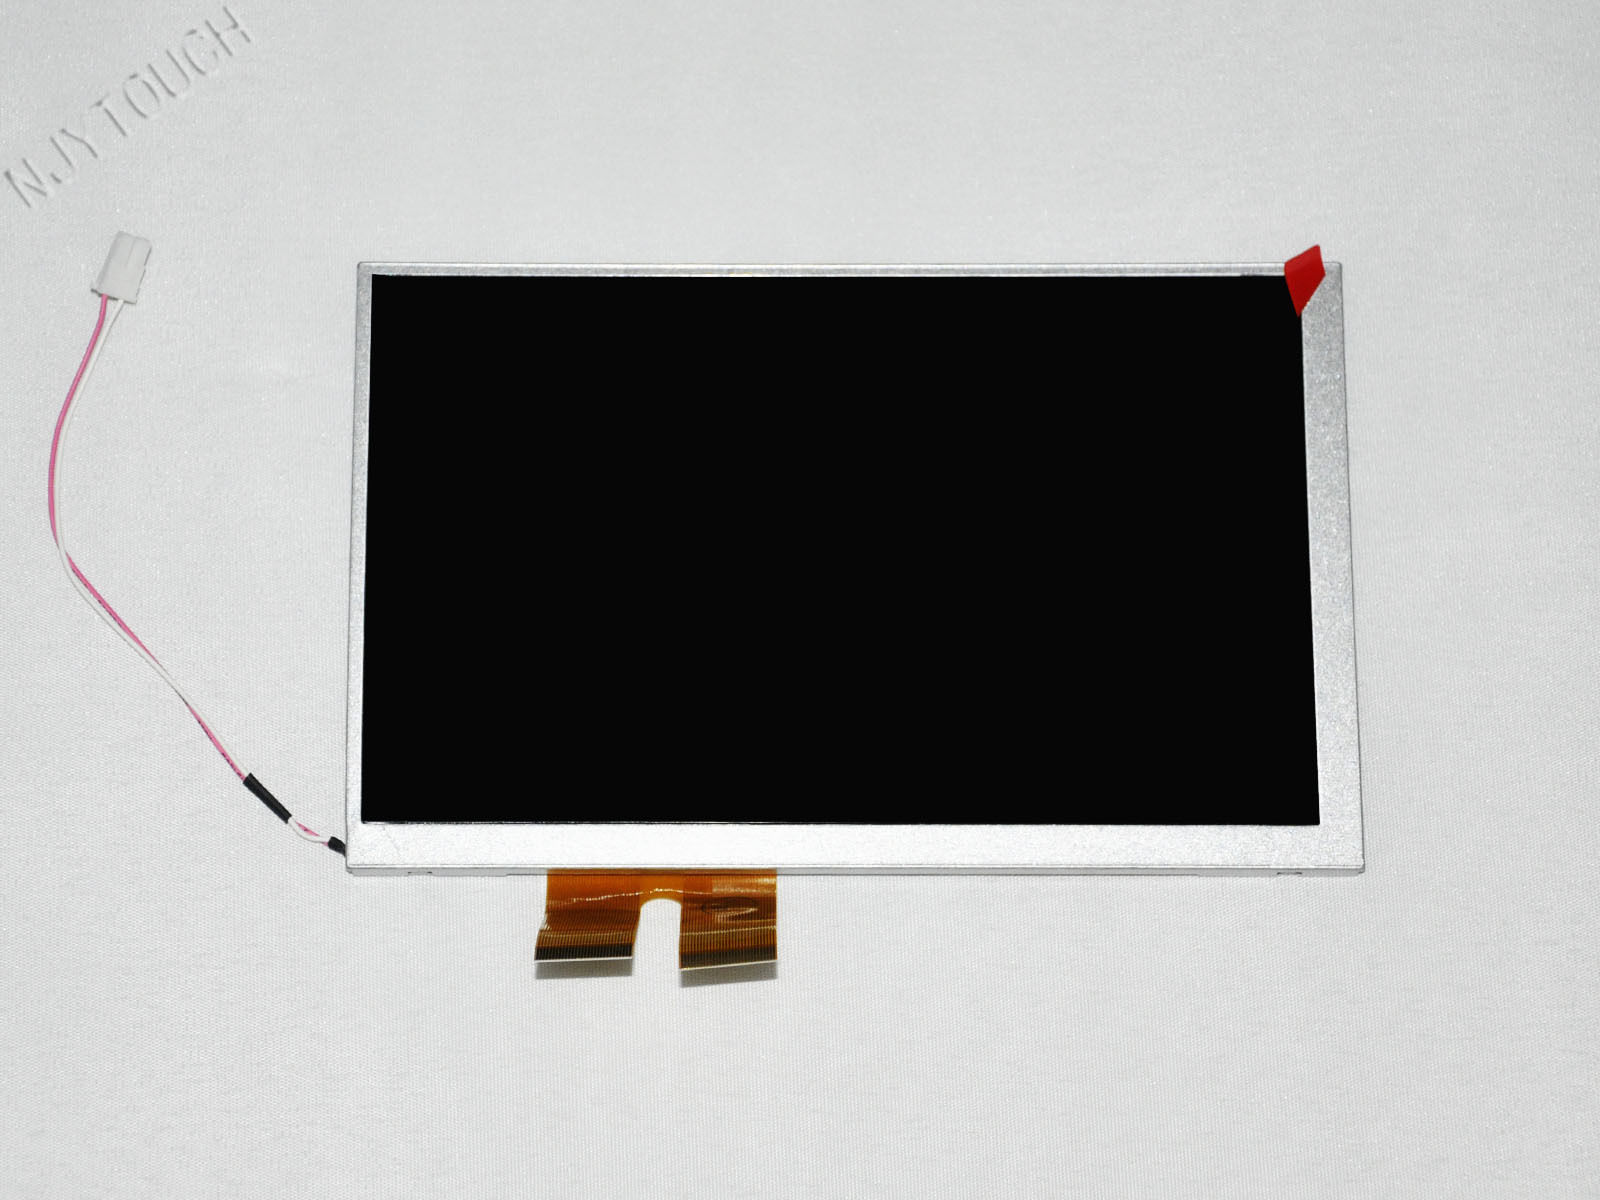 INNOLUX AT070TN82 V.1 LCD Panel